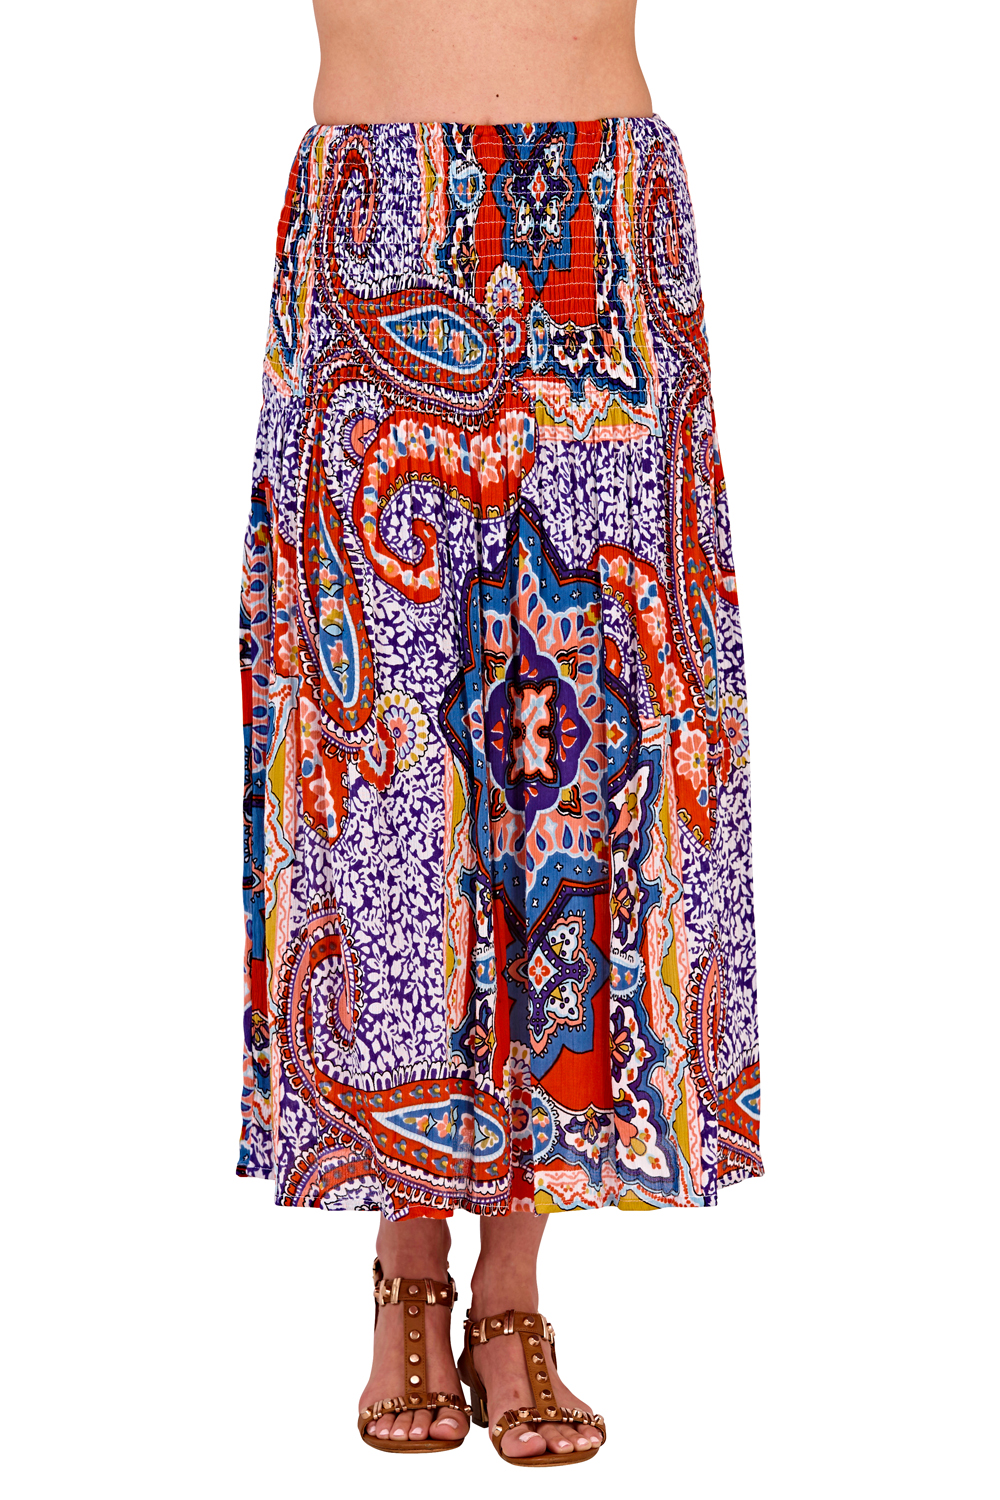 Pistachio-Womens-Patterned-3-In-1-Dresses-Ladies-New-Cotton-Summer-Beach-Skirts thumbnail 21